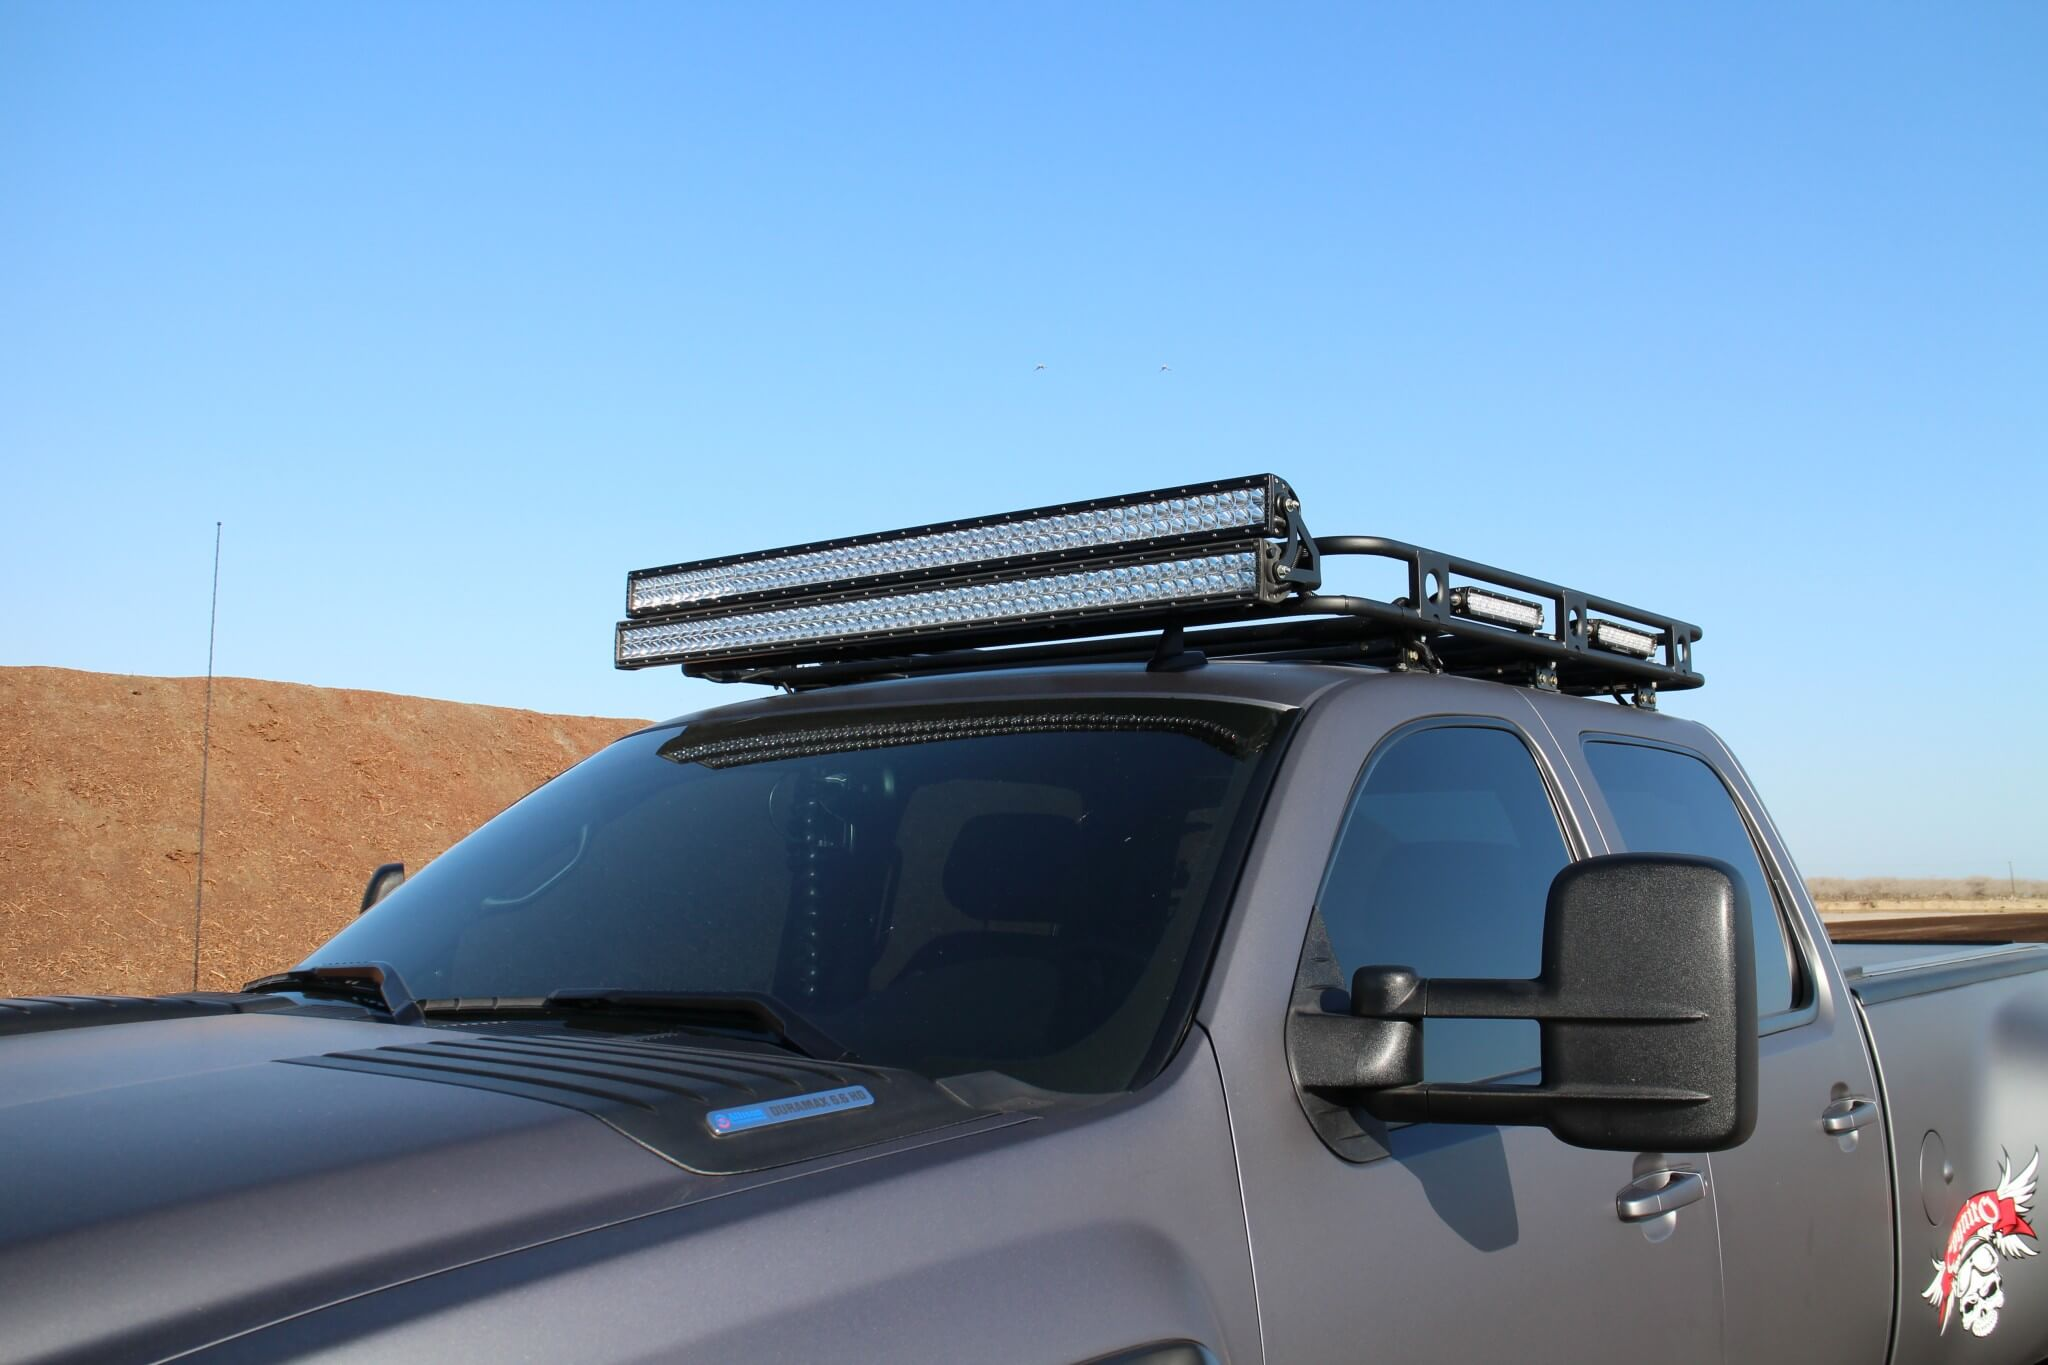 A Smittybuilt Defender roof rack was fitted with two stacked Rigid Industries 50-inch LED light bars up front, two 10-inch bars on each side and a single 30-inch bar to the rear.